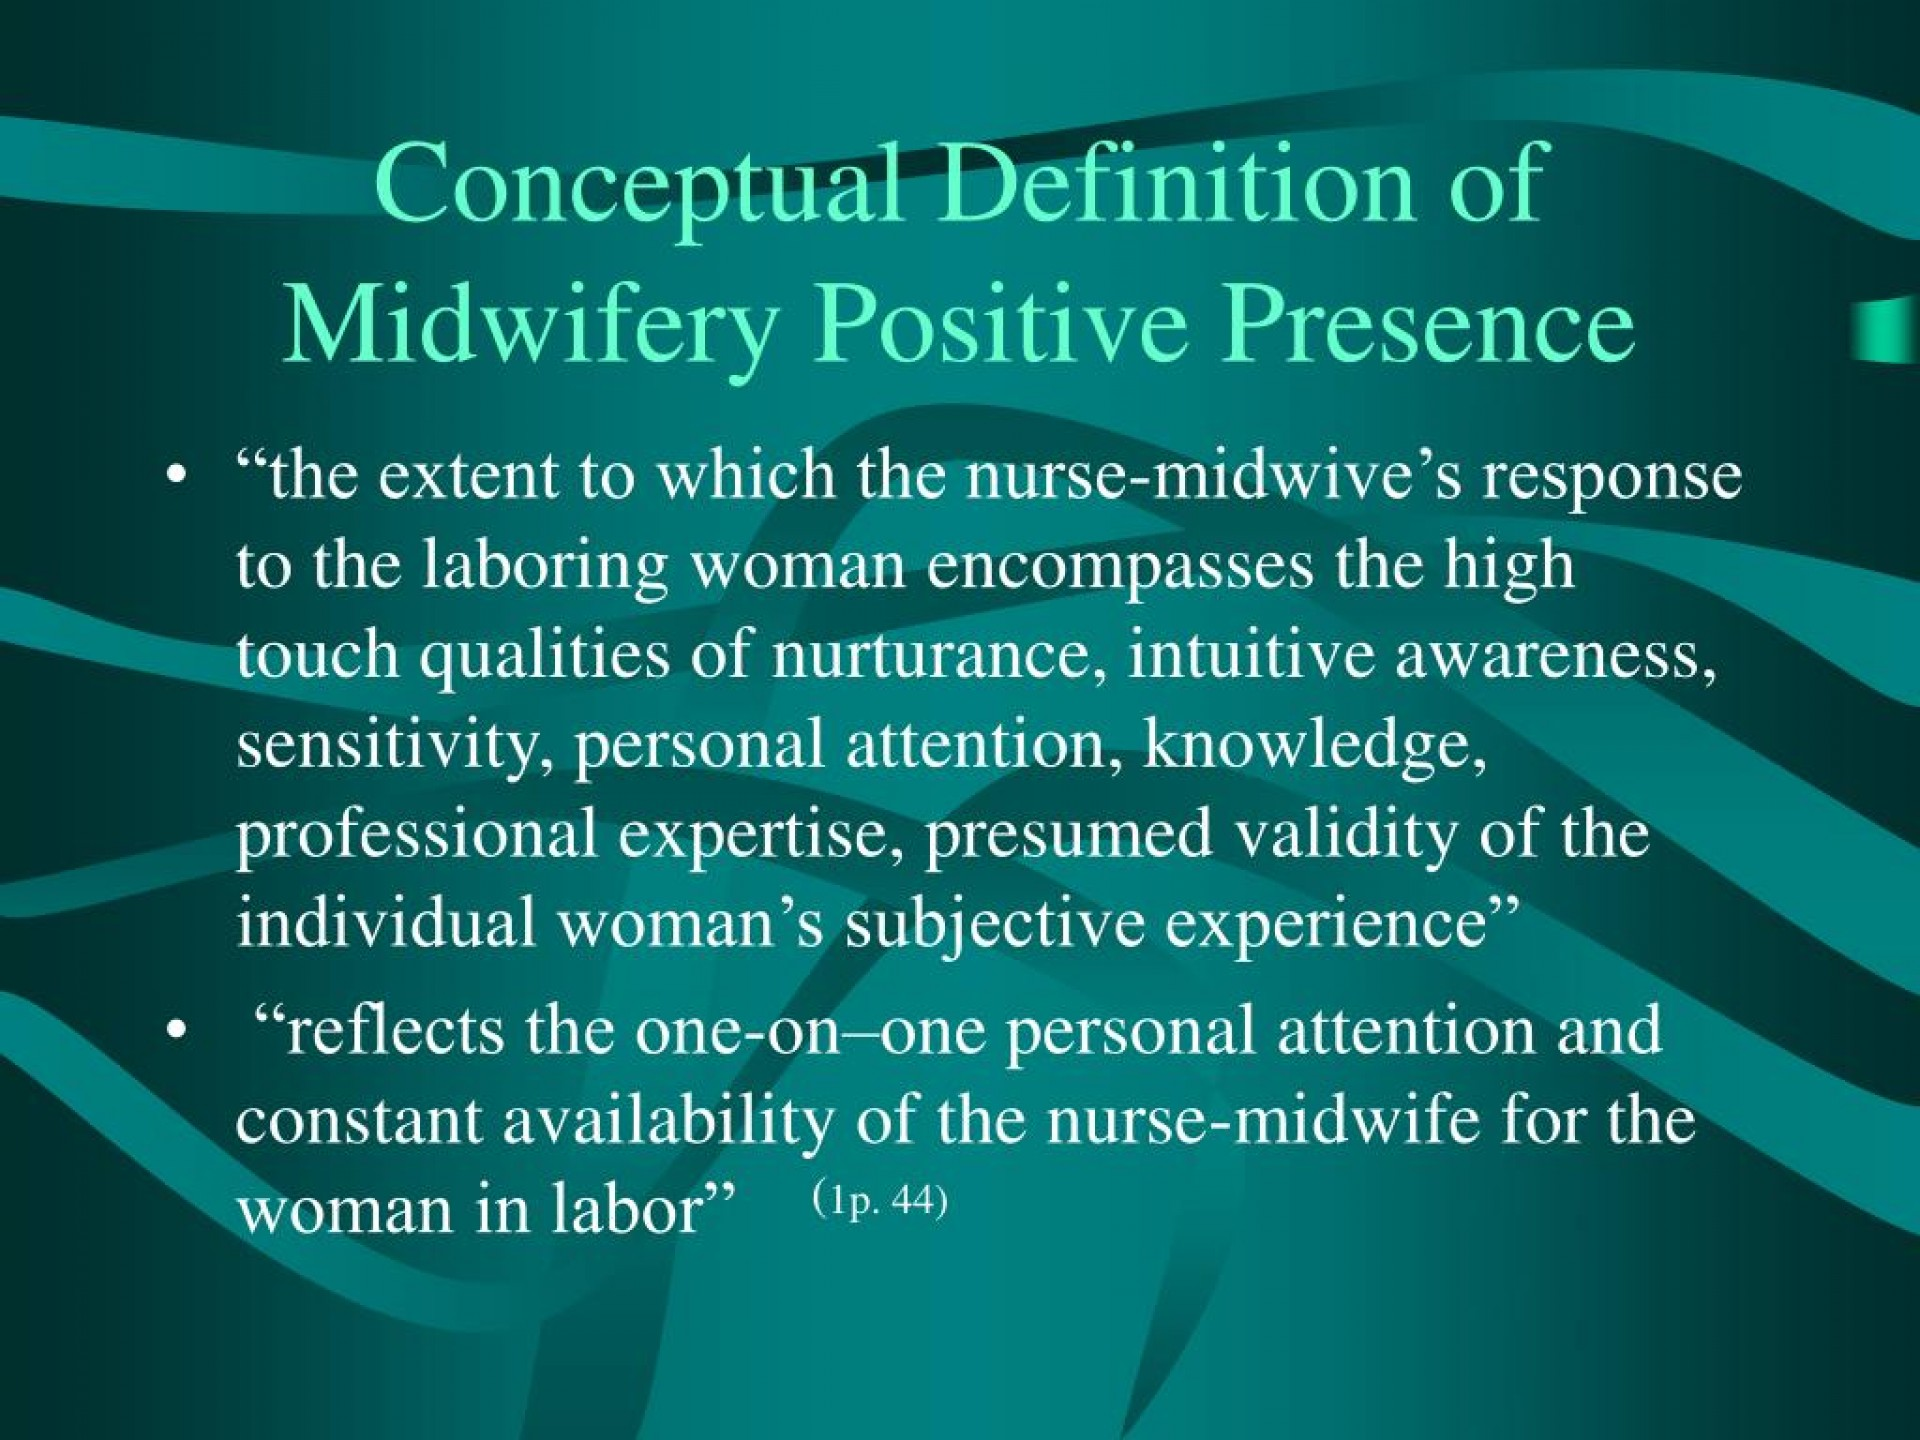 021 Essay Example Personal Definition Conceptual Of Midwifery Positive Presence Archaicawful Experience Narrative Meaning 1920